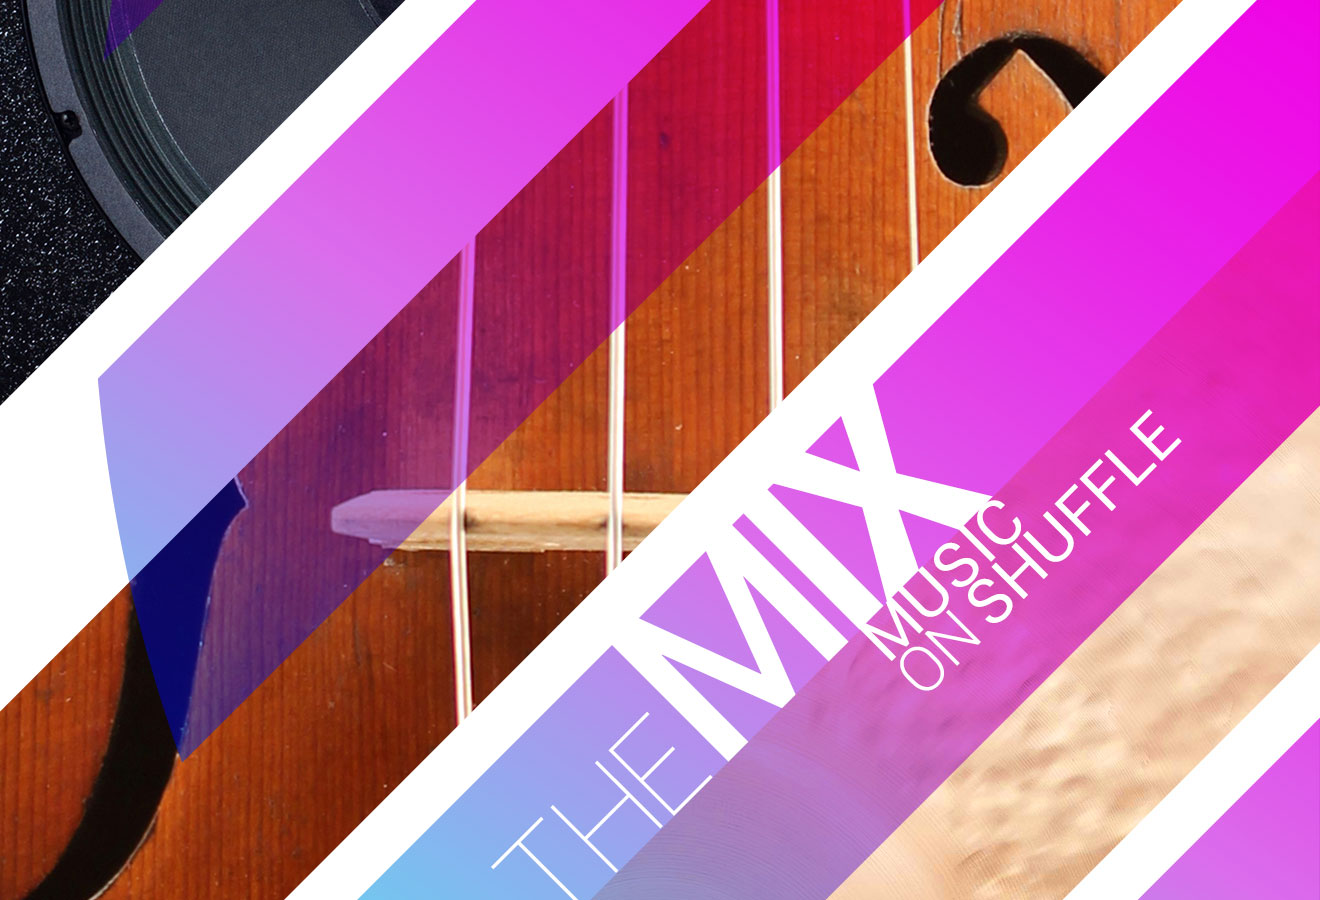 #ConcertLab: The Mix